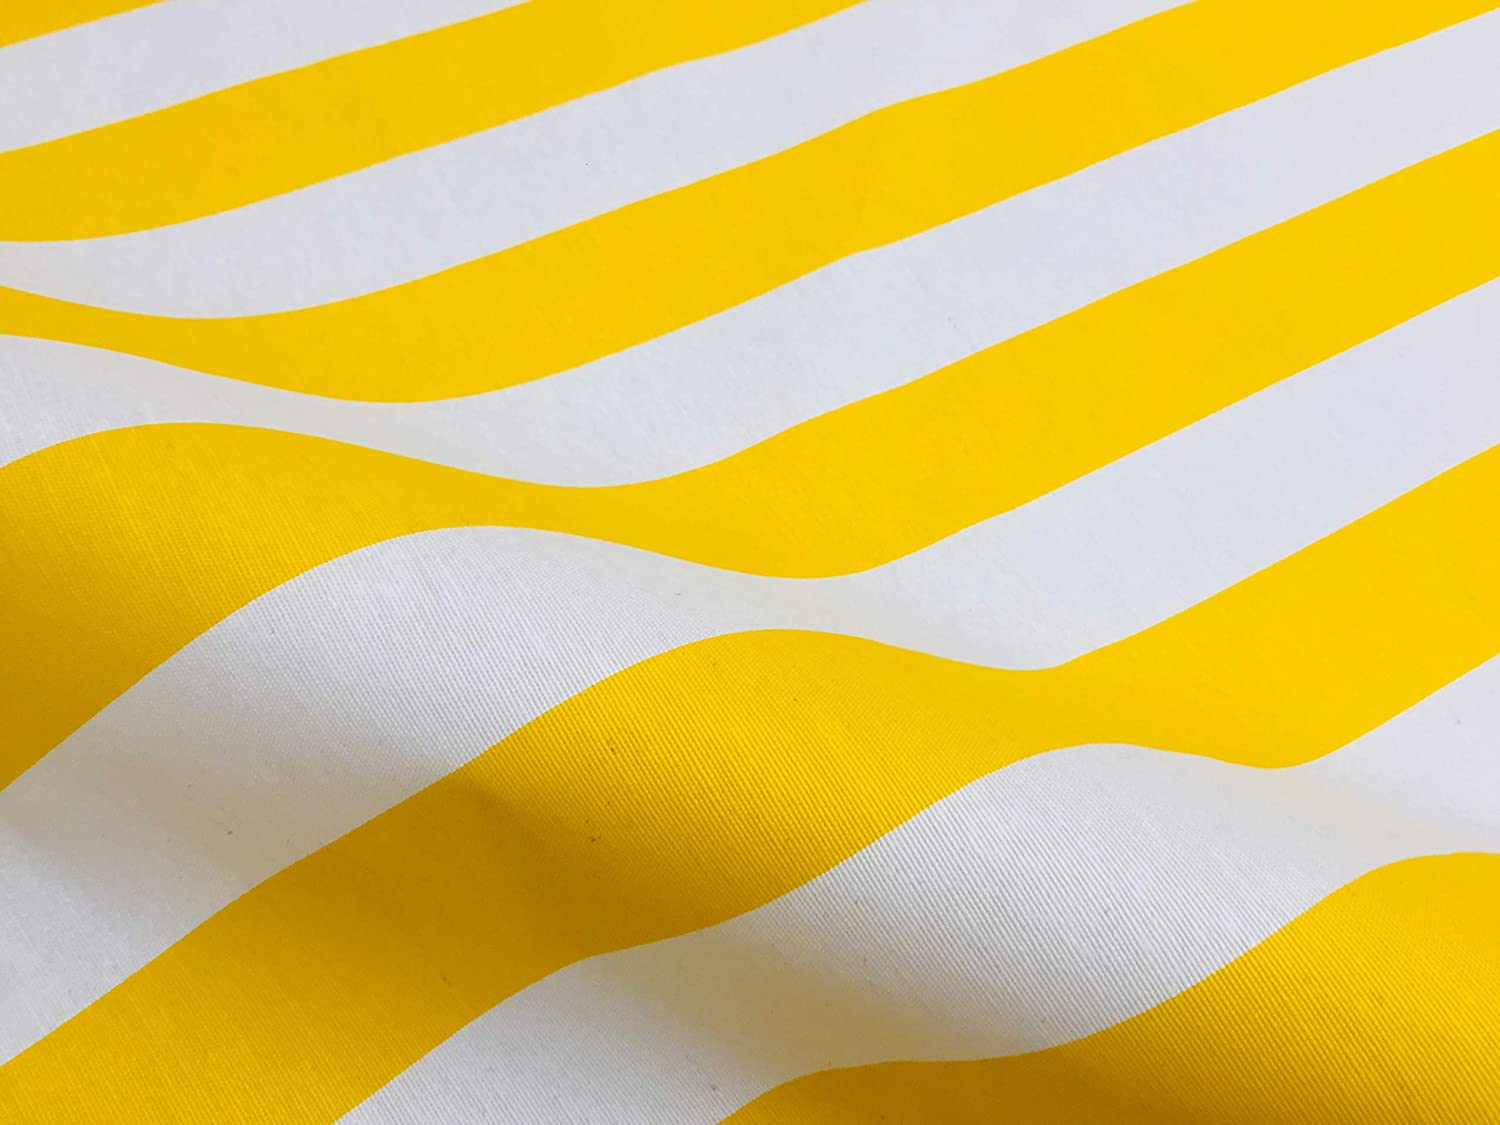 gazebo 140cm wide sold by the metre BLACK /& WHITE, 1 METRE beach 4cm wide Stripe Canvas Material for cushions Teflon Waterproof Outdoor Striped Fabric